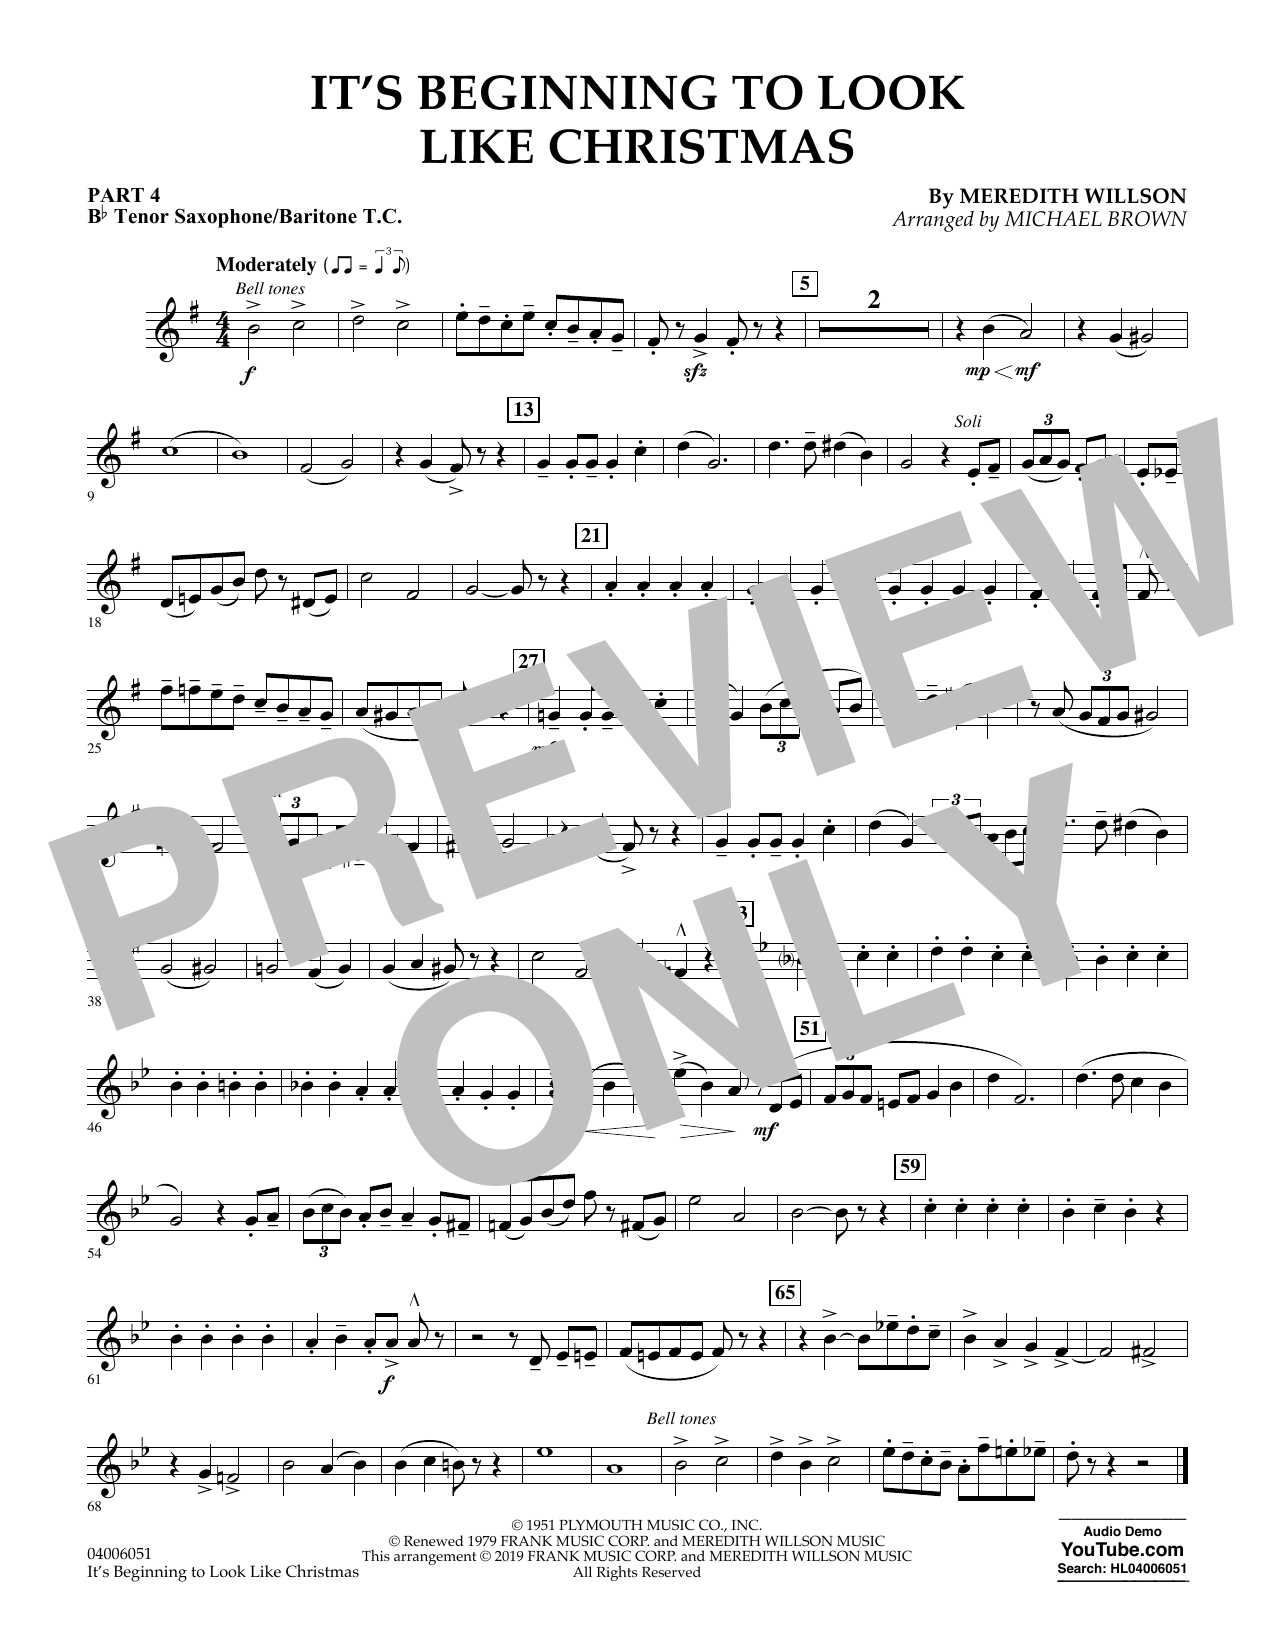 Meredith Willson It's Beginning to Look Like Christmas (arr. Michael Brown) - Pt.4 - Bb Tenor Sax/Bar. T.C. sheet music preview music notes and score for Concert Band: Flex-Band including 1 page(s)